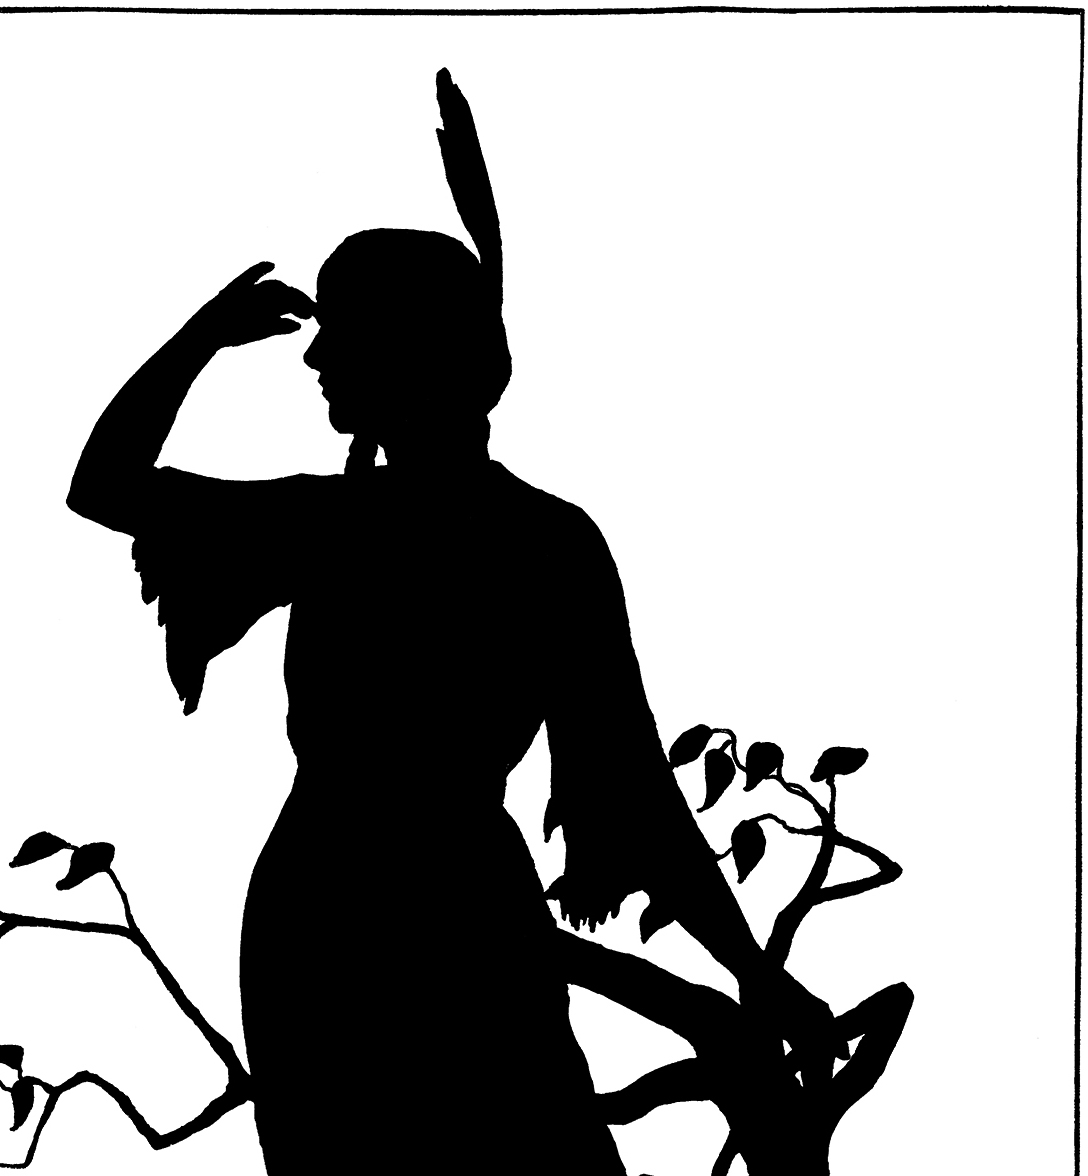 Vintage female silhouette clipart clipart Vintage Native American Girl Image - Silhouette! - The Graphics Fairy clipart